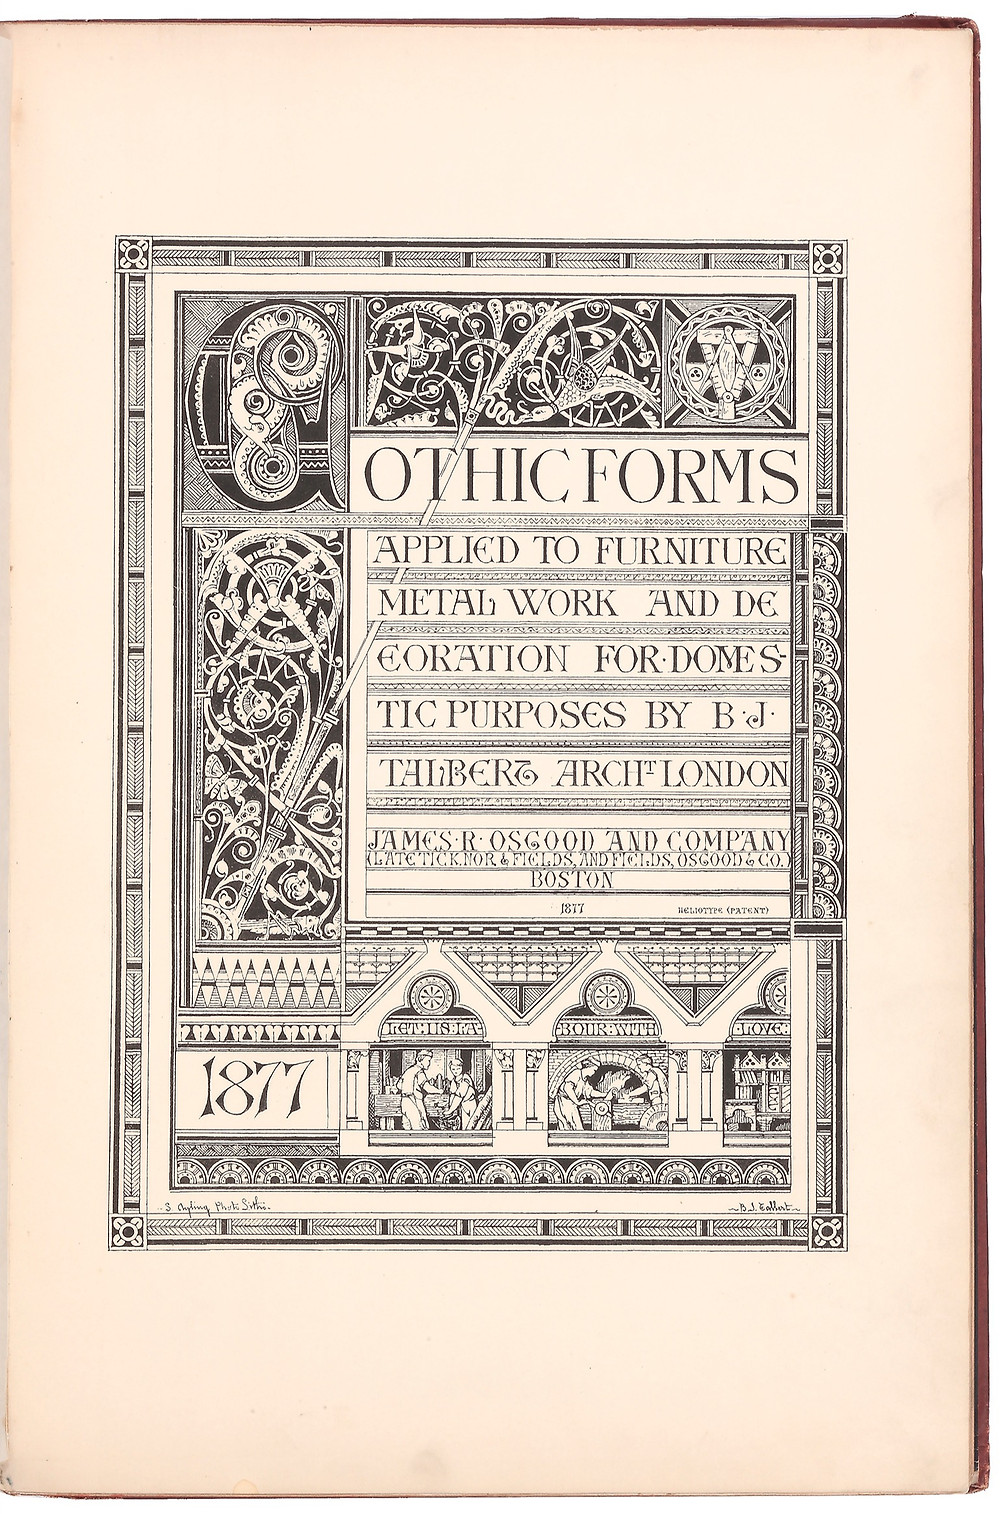 Bruce James Talbert (1838–1881). Gothic forms applied to furniture, metal work and decoration for domestic purposes. Boston: James R. Osgood and Company, 1877.